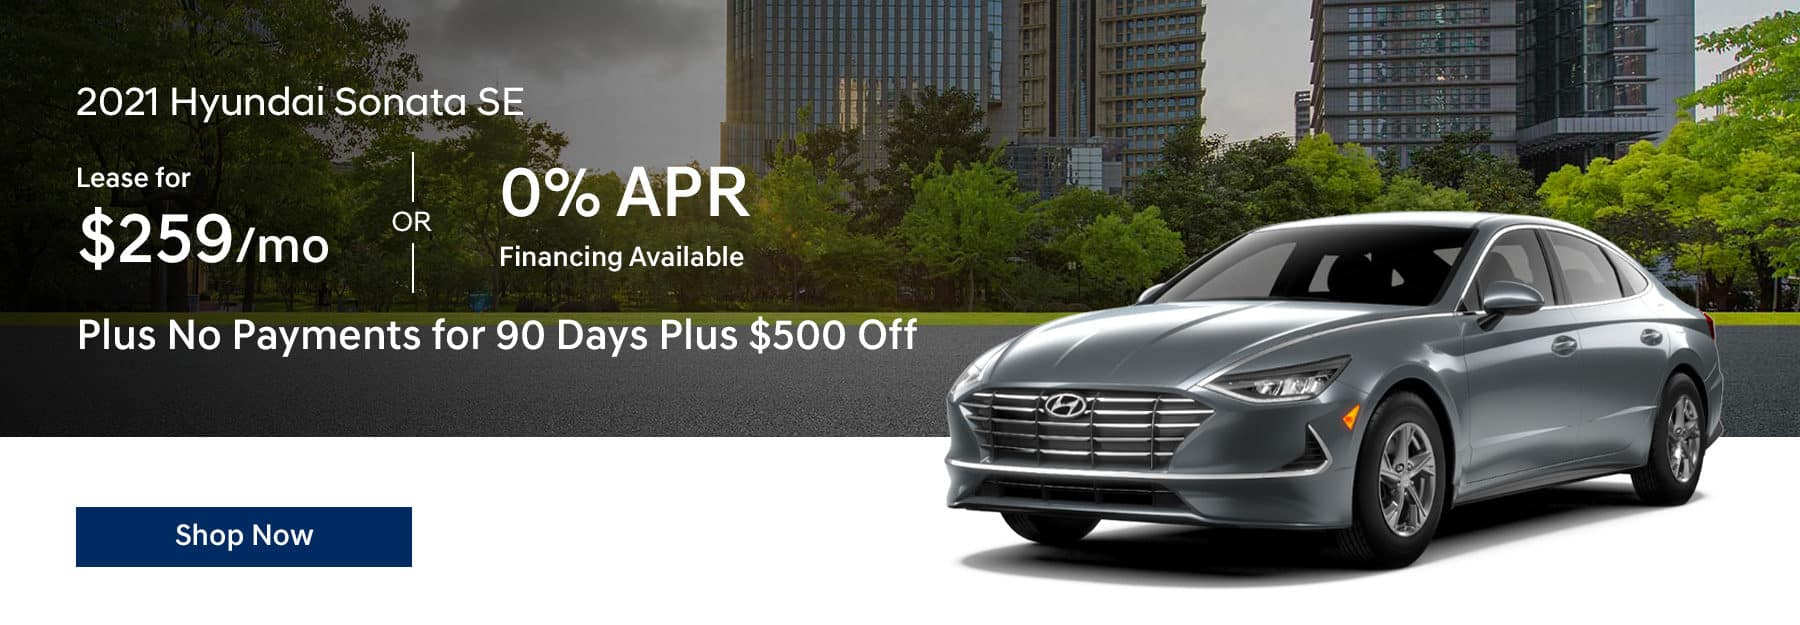 2021 Elantra Subtext: Lease for $179/mo OR 0% APR Available Plus No Payments for 90 Days Plus $500 Off